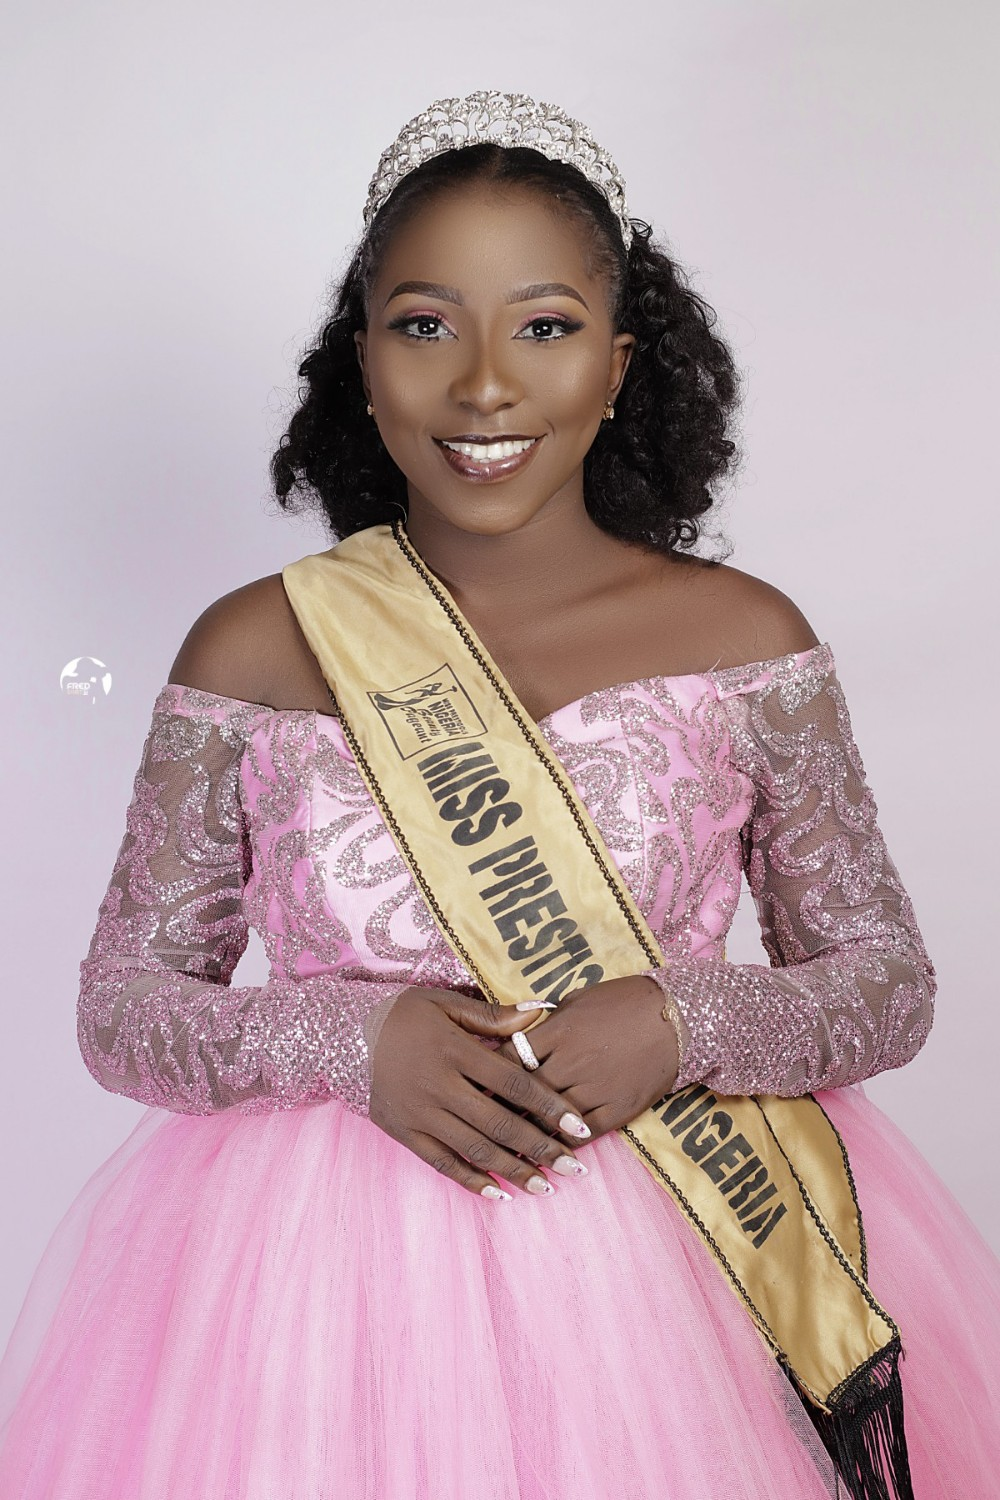 Adaeze Grace Okoro: Newly Crowned Miss Prestigious Nigeria stuns in official photoshoot